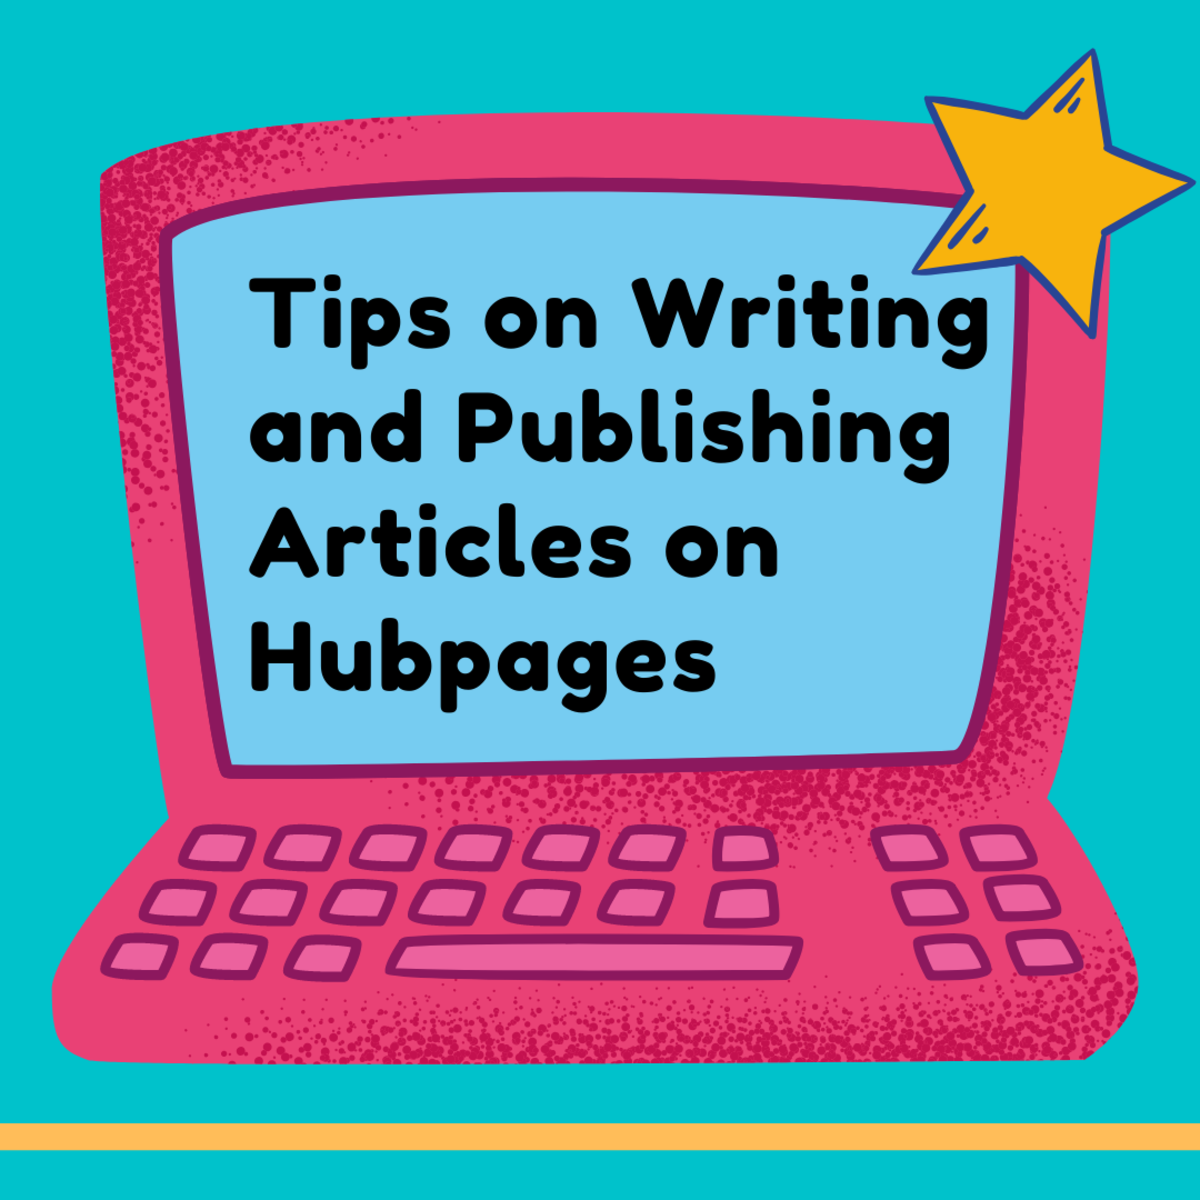 Ten Tips on Writing and Publishing Articles on Hubpages